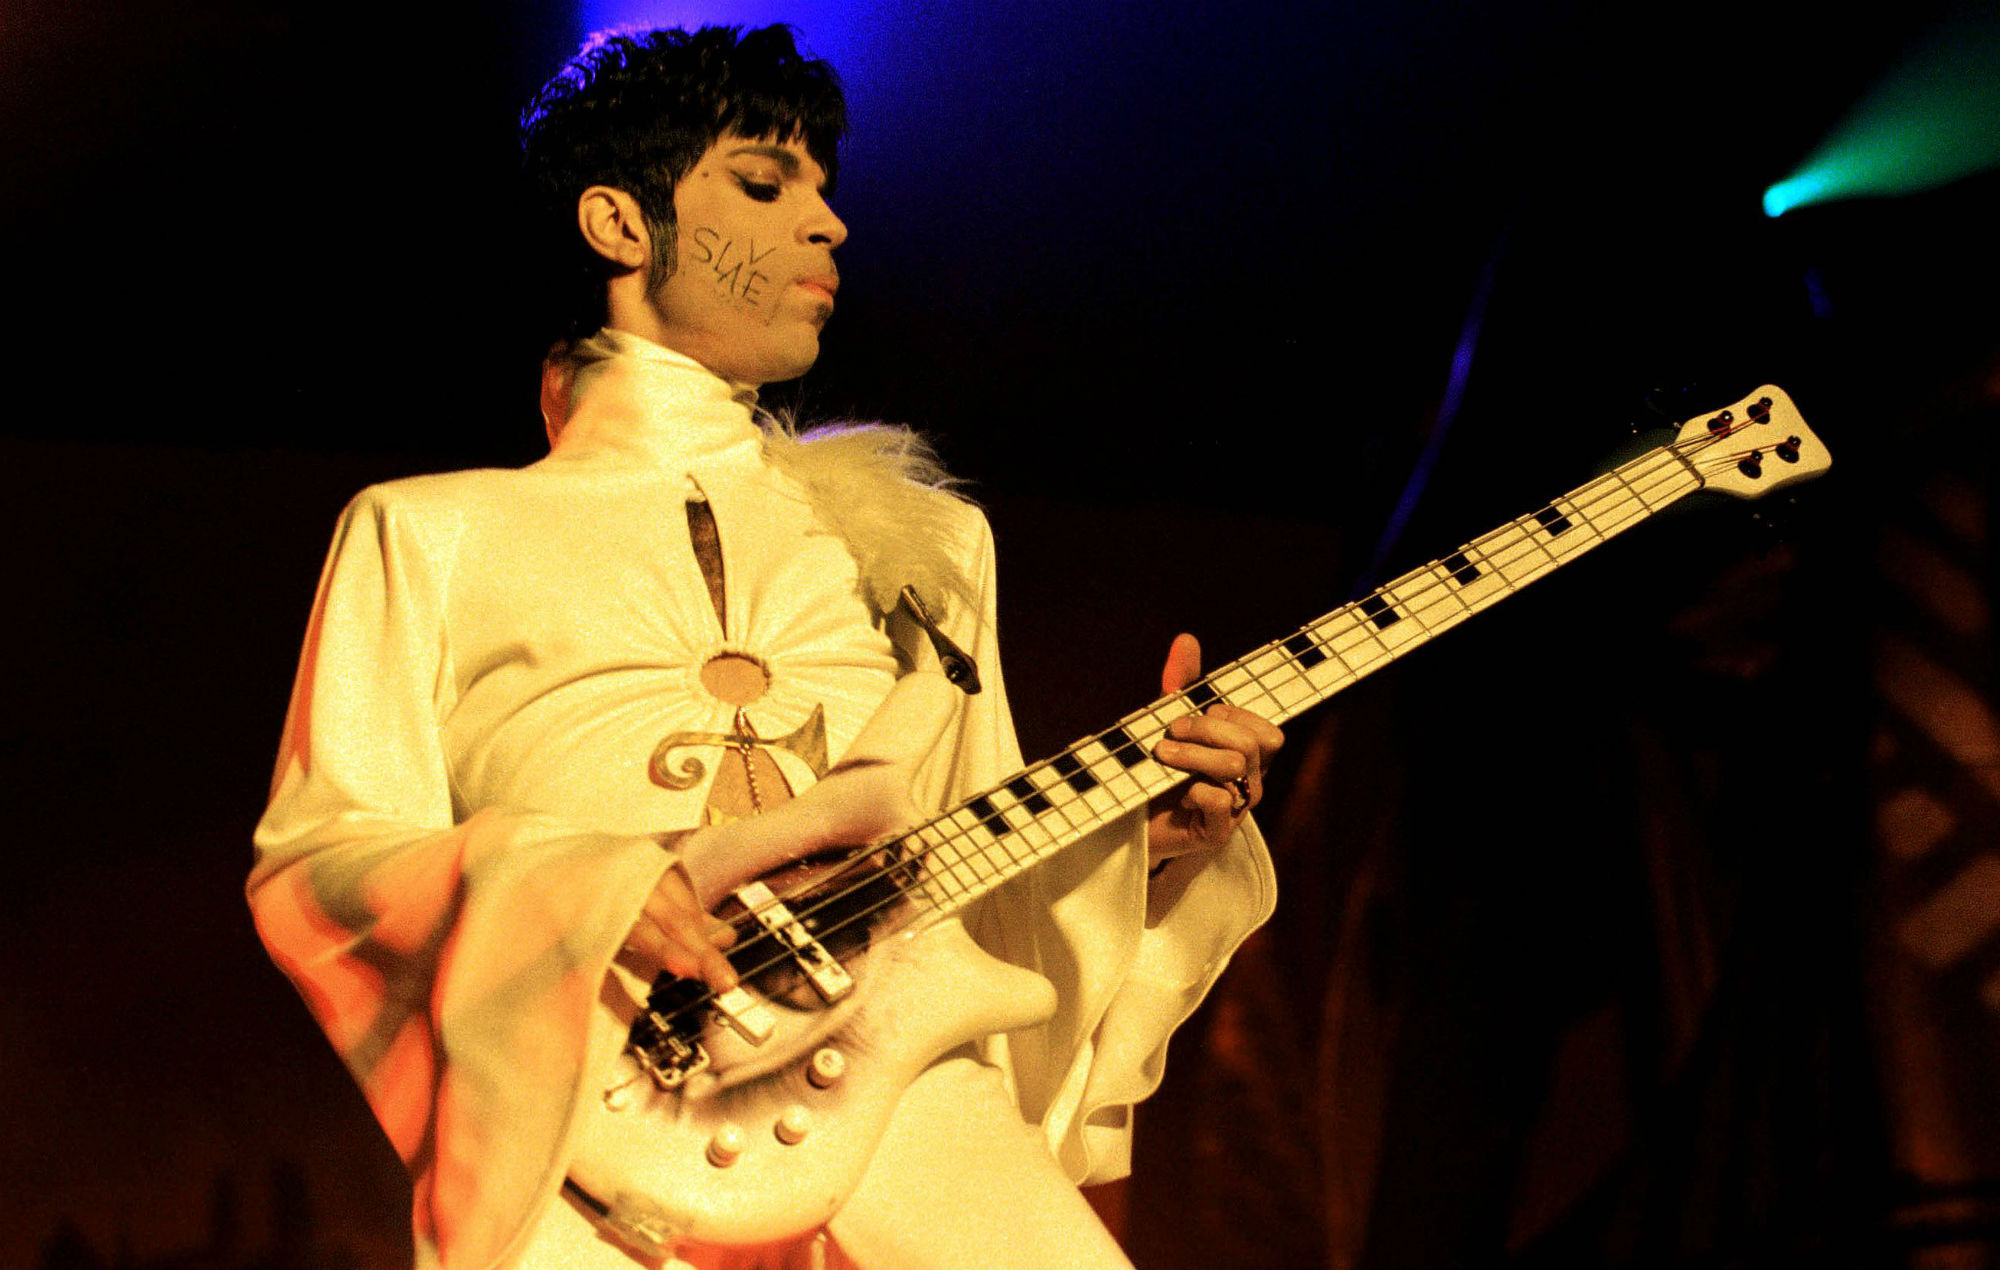 Prince wrongful death lawsuit has been dismissed